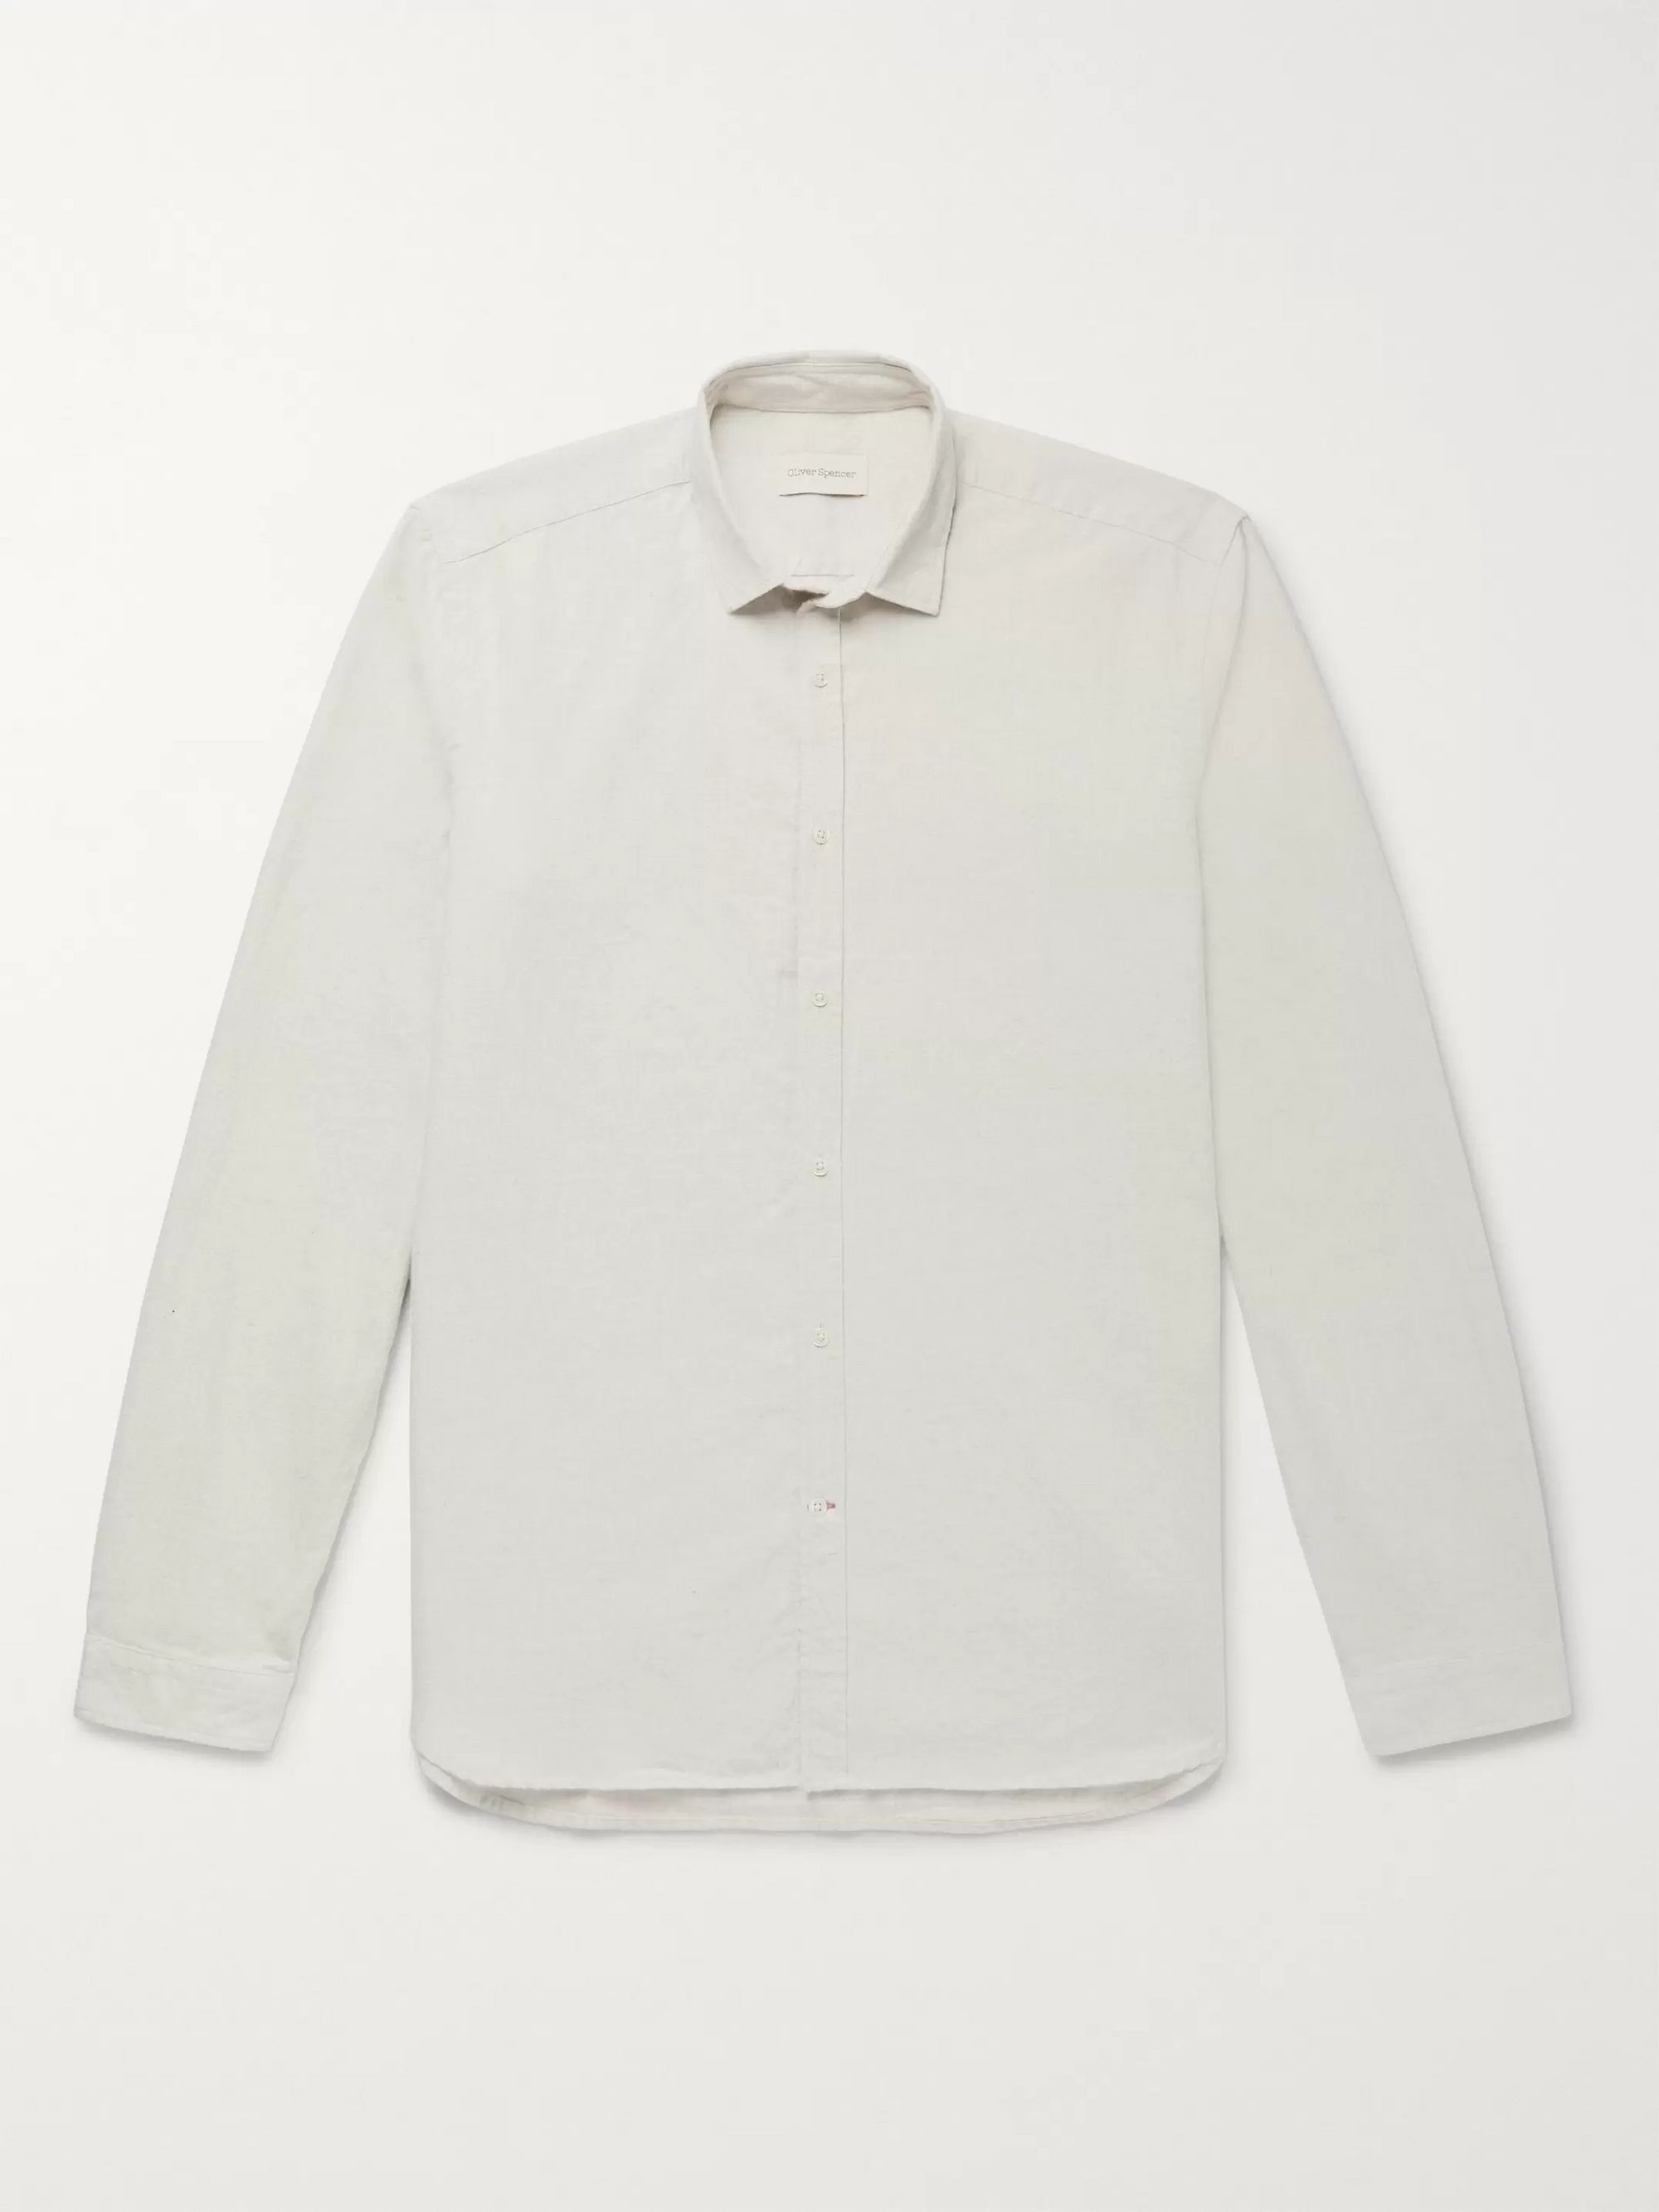 Oliver Spencer Clerkenwell Brushed-Cotton Shirt